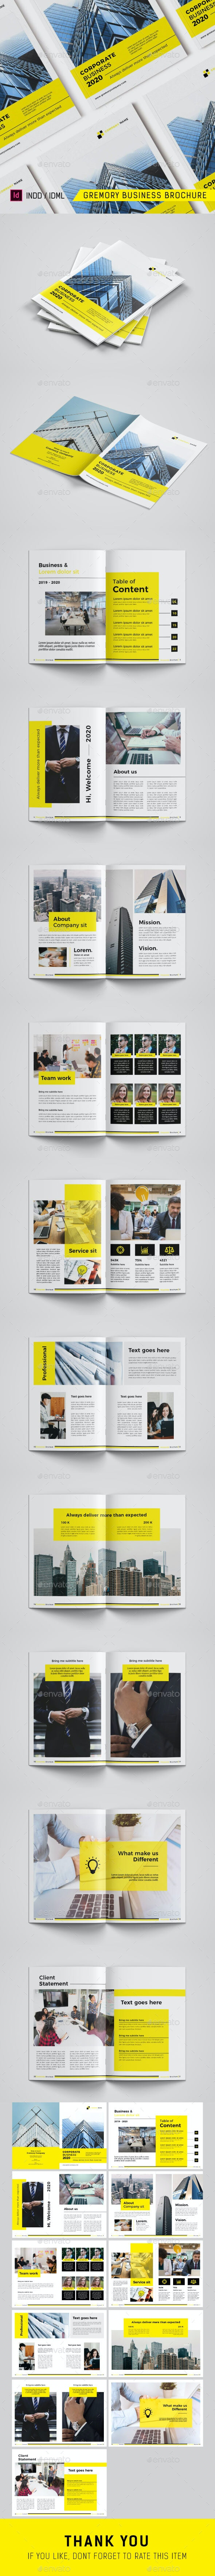 Gremory Corporate Business Brochure Template - Corporate Brochures